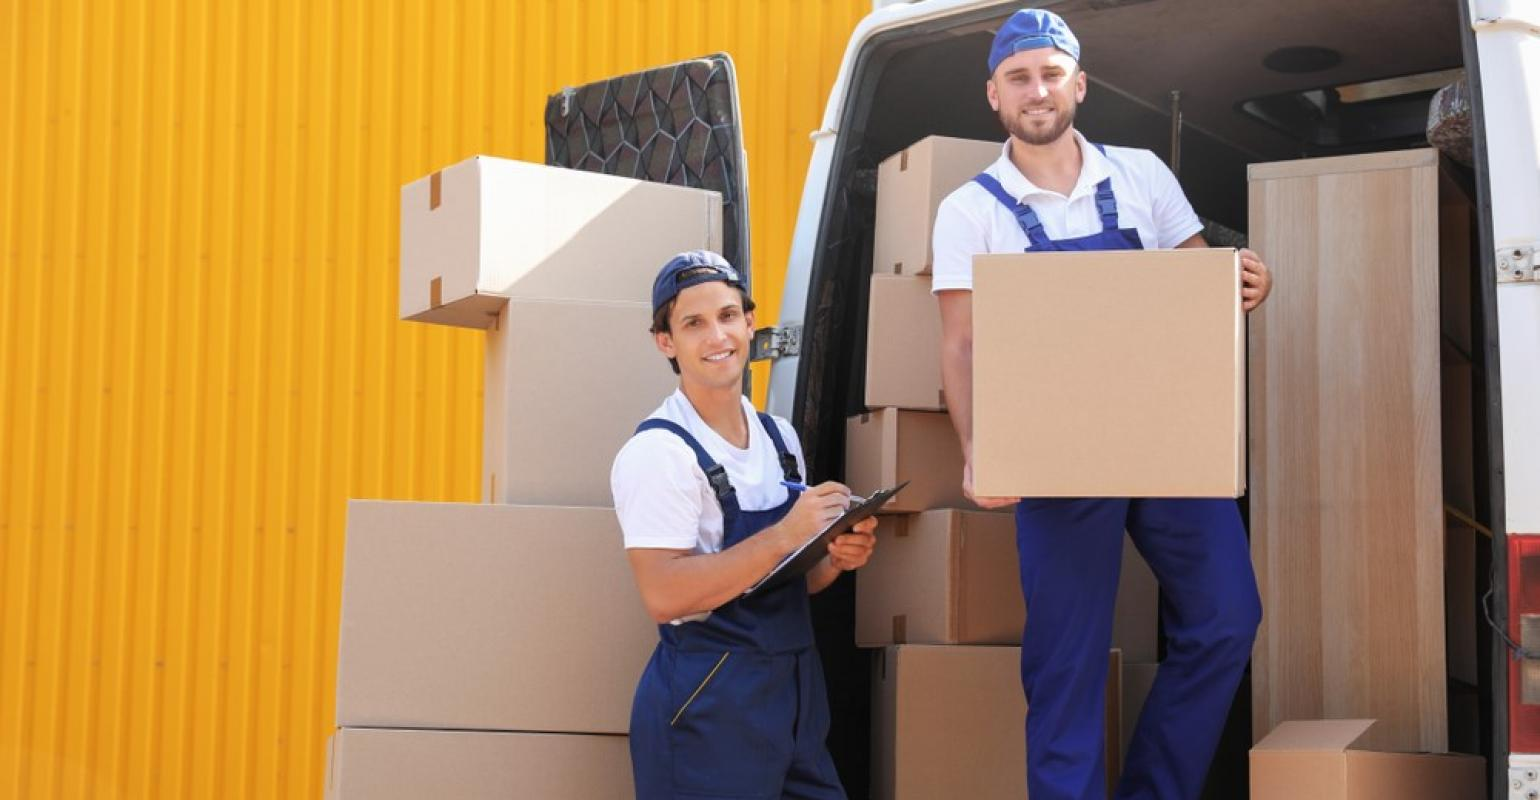 Finding the best local moving company in your city - antropologianutricion